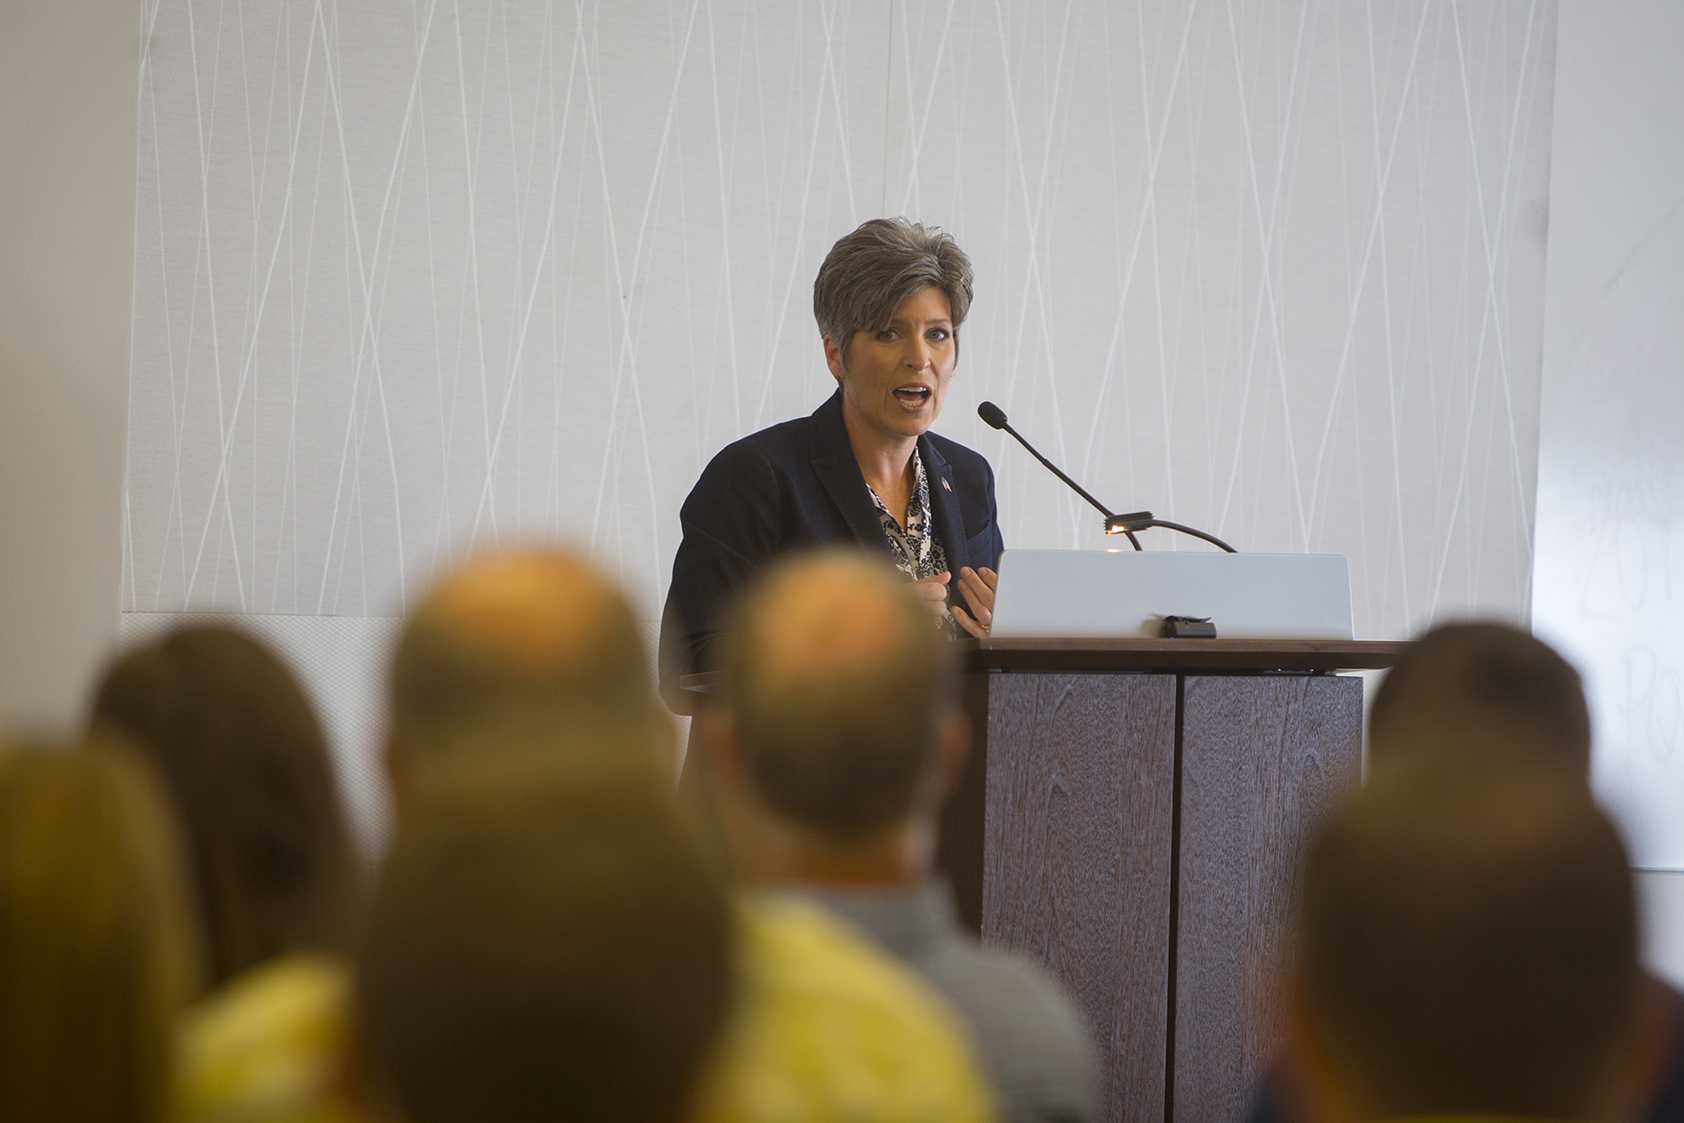 Senator Joni Ernst (R-IA) speaks during a US Service Academy Open House in the Cedar Rapids Public Library on Saturday, June 24, 2017. Sen. Ernst met with prospective military families and protesters alike to answer questions both on and off par with the event. (Lily Smith/The Daily Iowan)